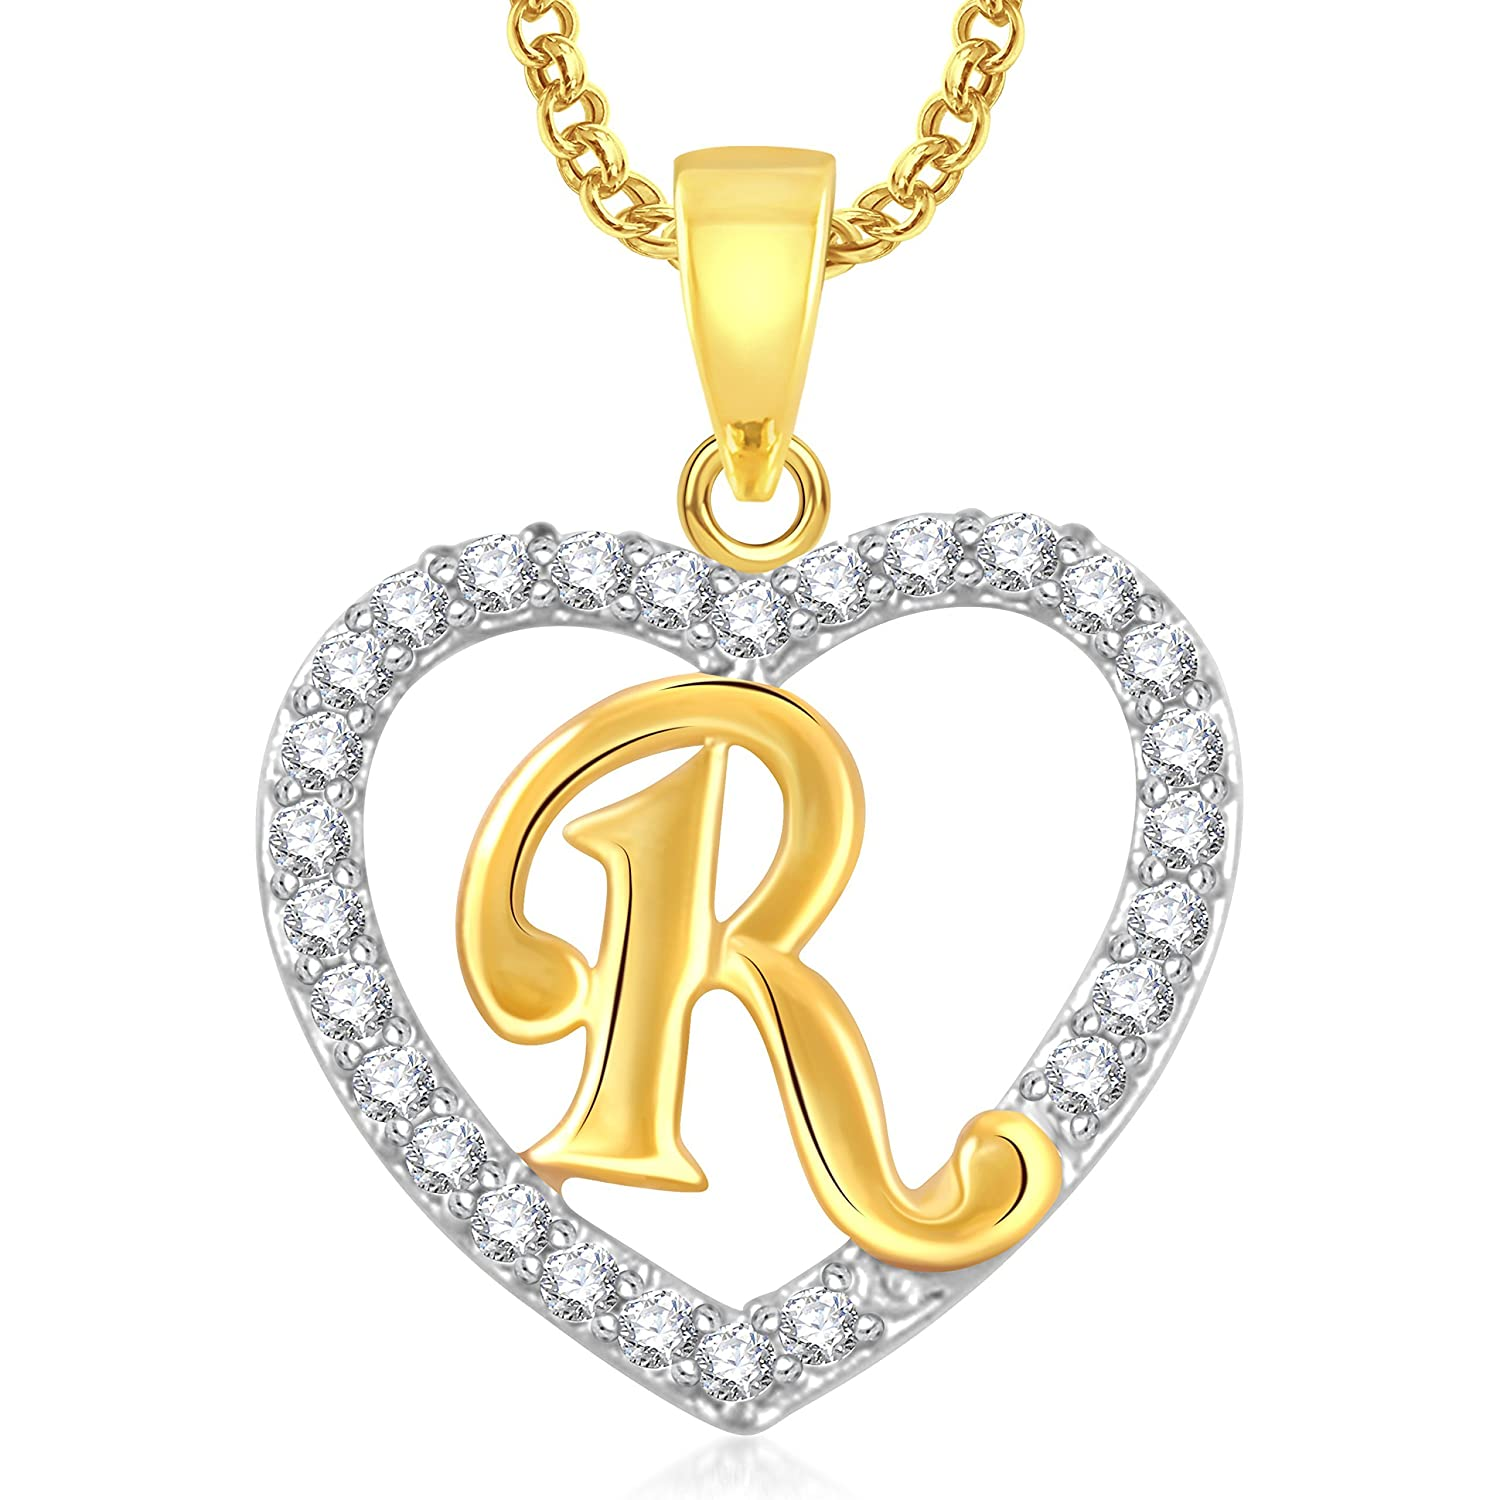 pendant necklace classic heart chains gold plain plated accent rhodium double white